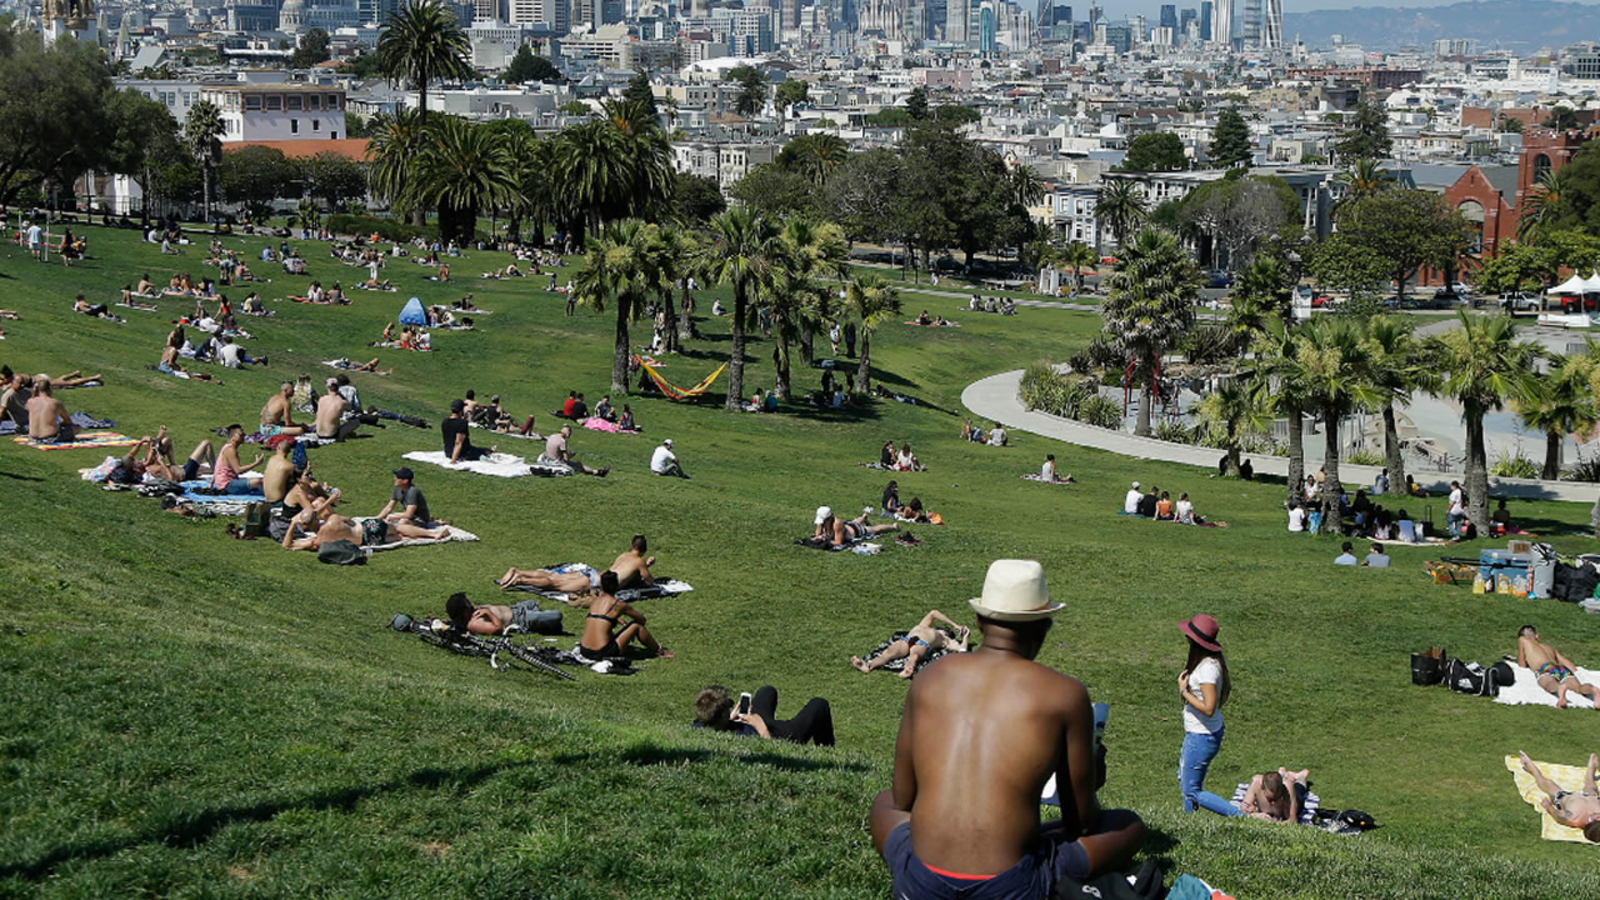 Police respond to shooting at San Francisco's Dolores Park, 1 victim reported